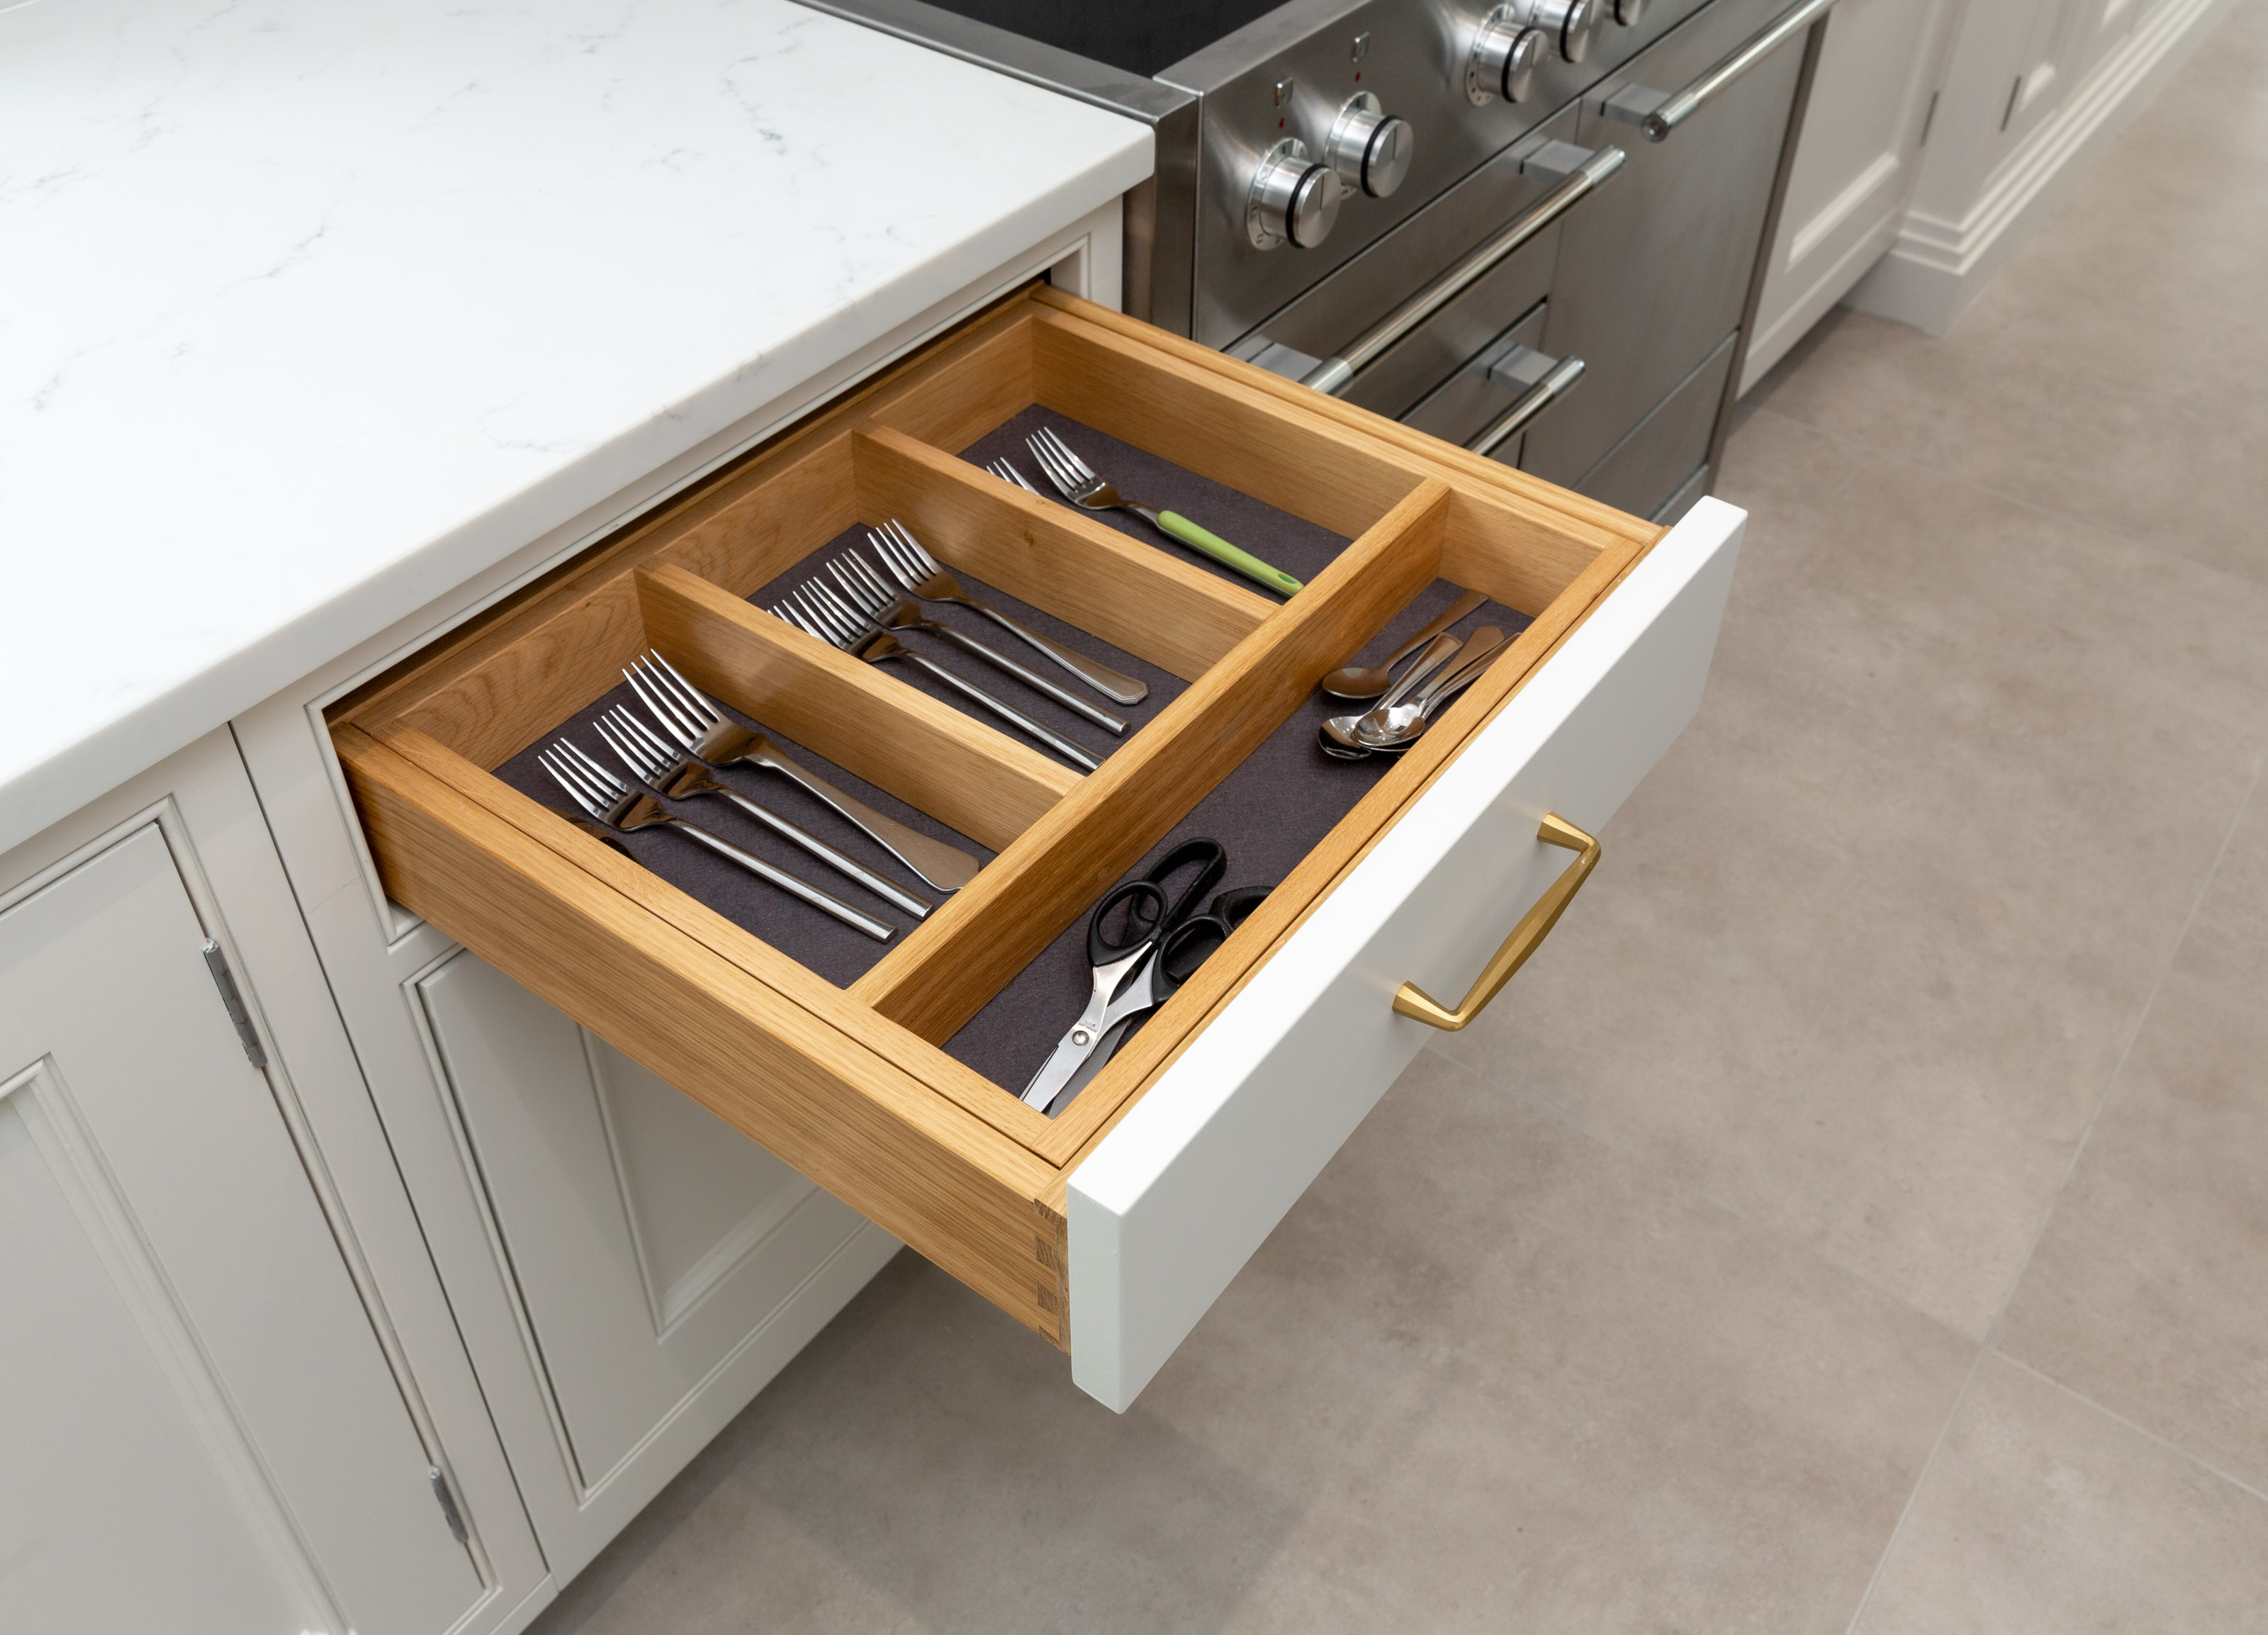 Watsons_Kitchens_Harrogate-13